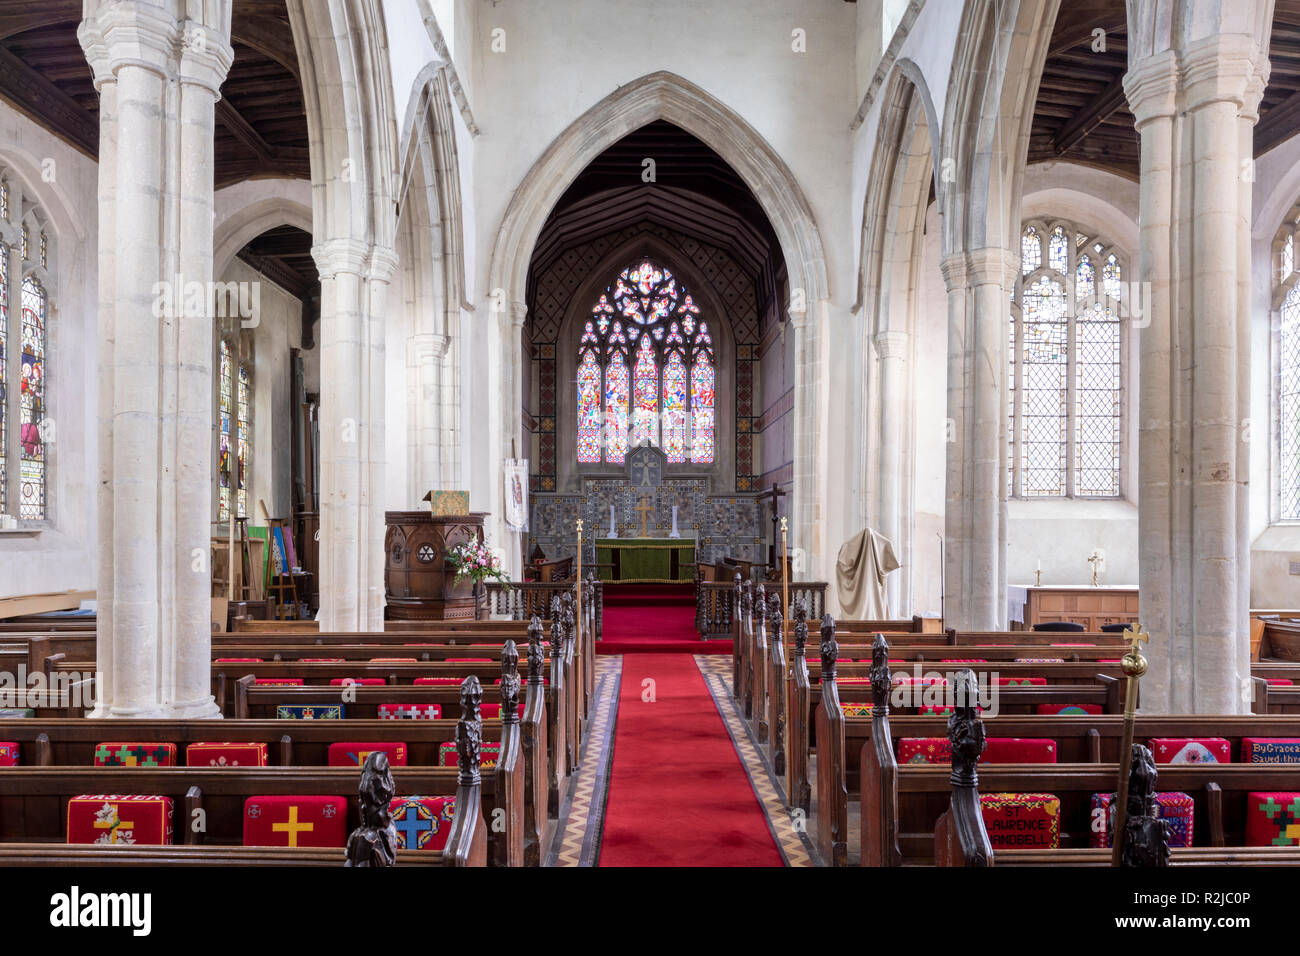 The interior of St Lawrence church in the village of Great Waldingfield. Suffolk UK Stock Photo